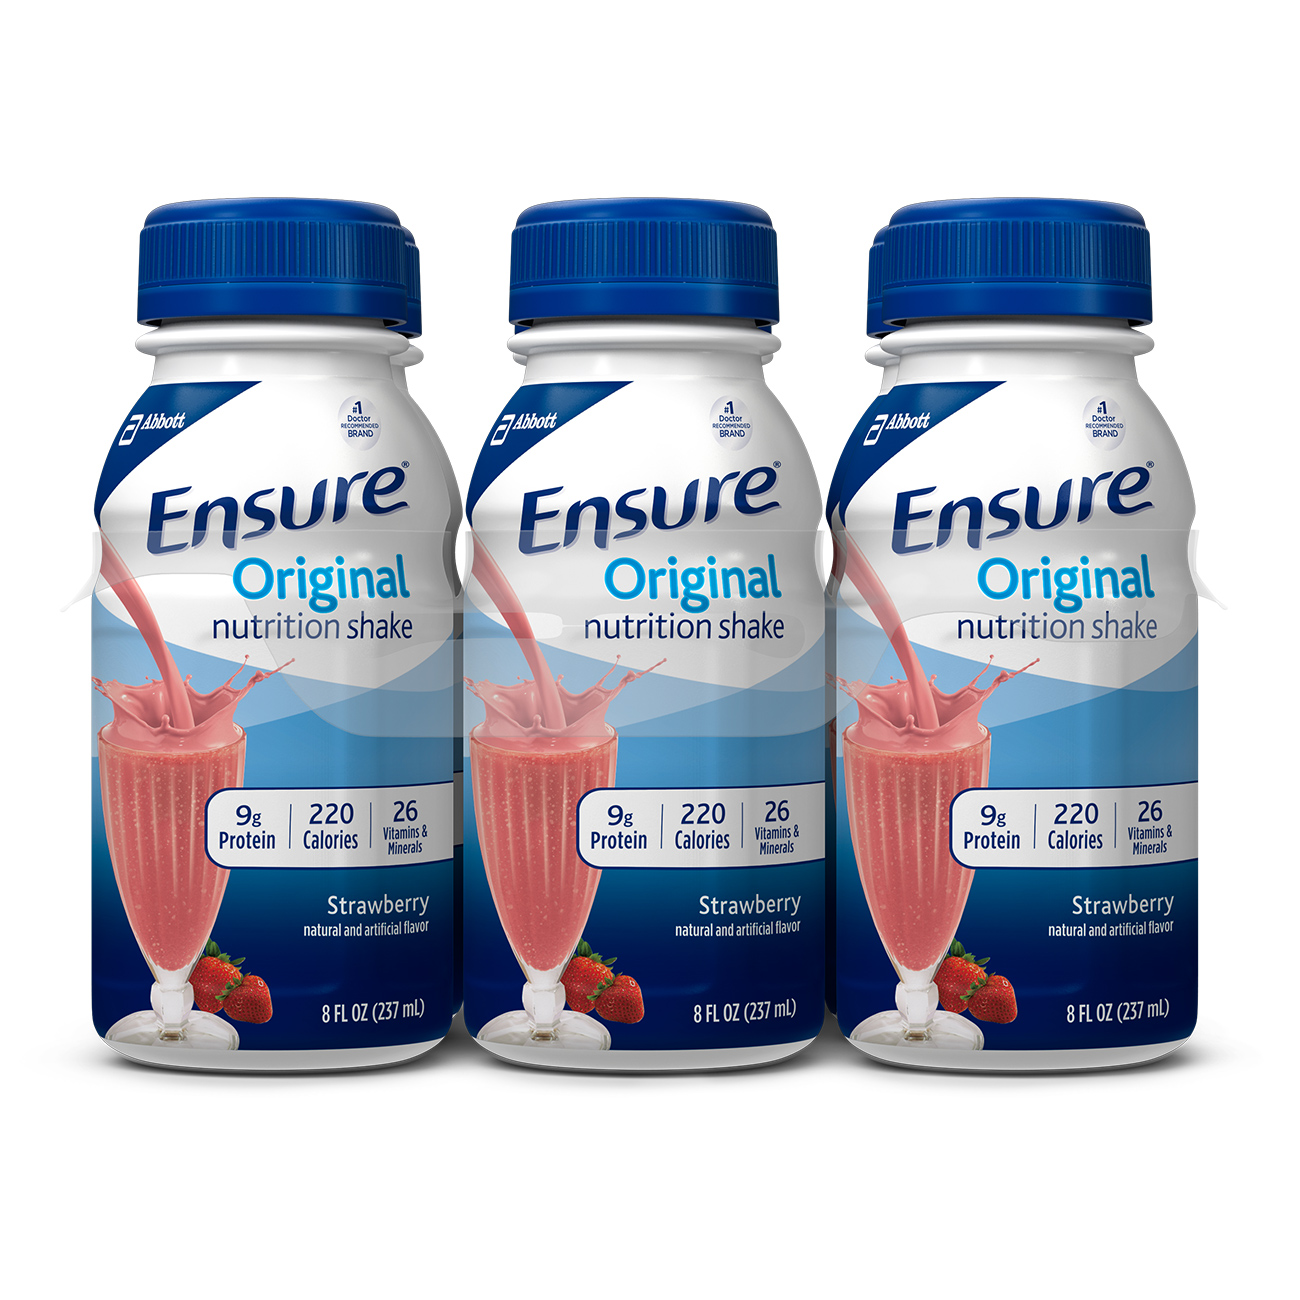 Ensure Original Nutrition Shake with 9 grams of protein, Meal Replacement Shakes, Strawberry, 8 fl oz, 6 Count